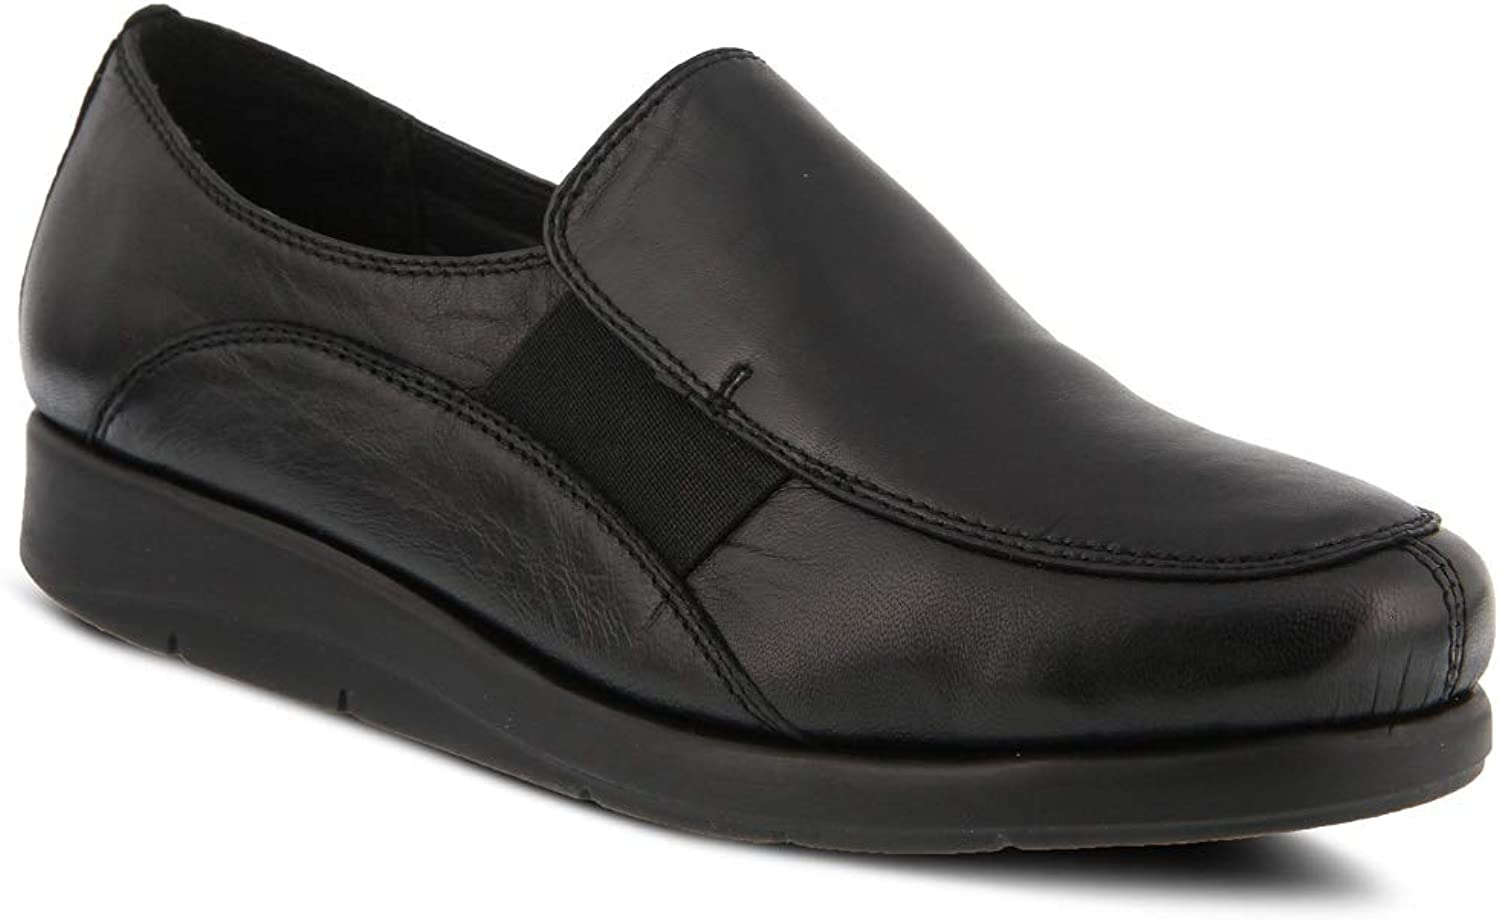 Spring Step Women's Zipora shoes   color Black   Leather shoes